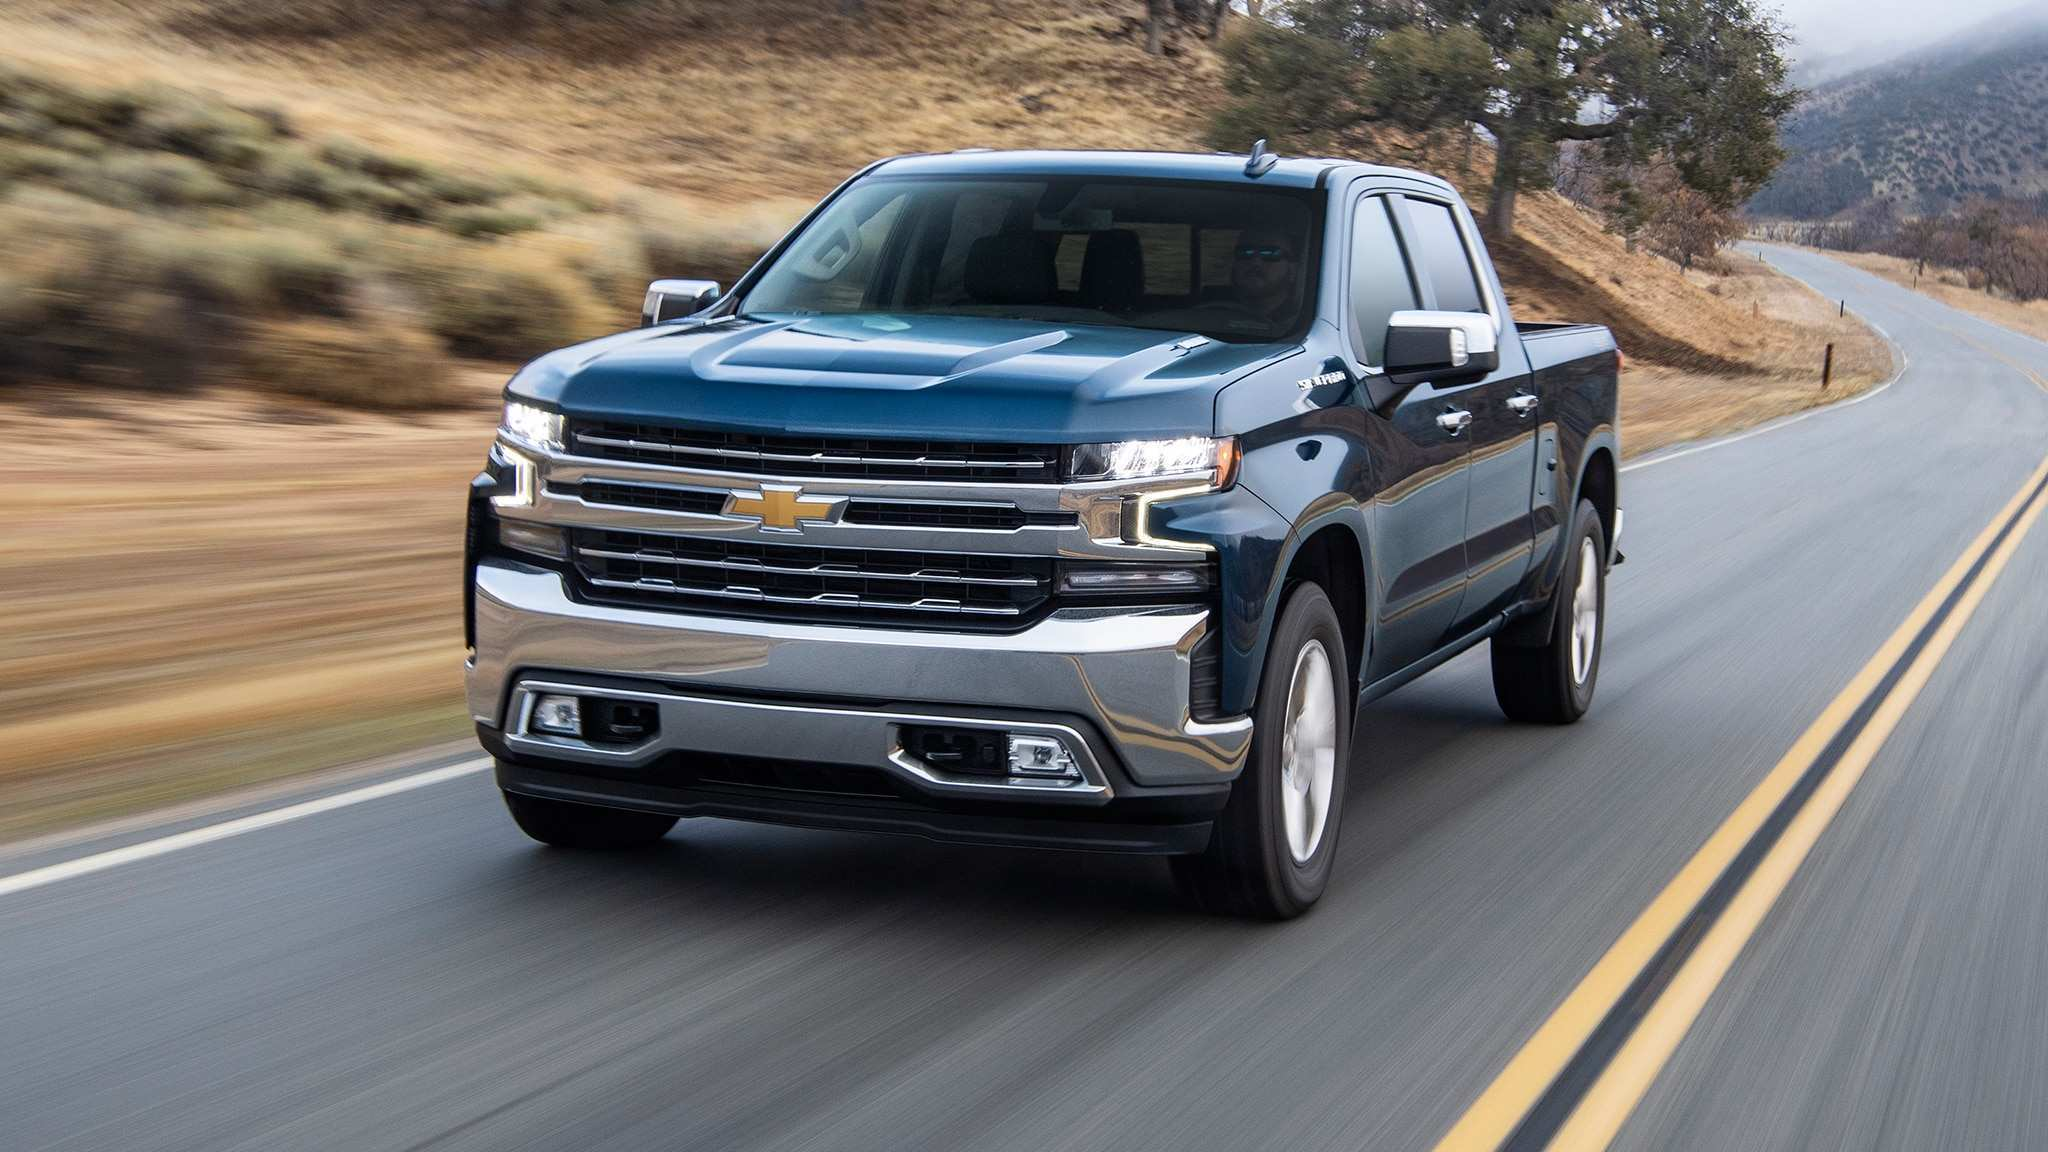 49 All New Chevrolet Silverado Ss 2020 Ratings